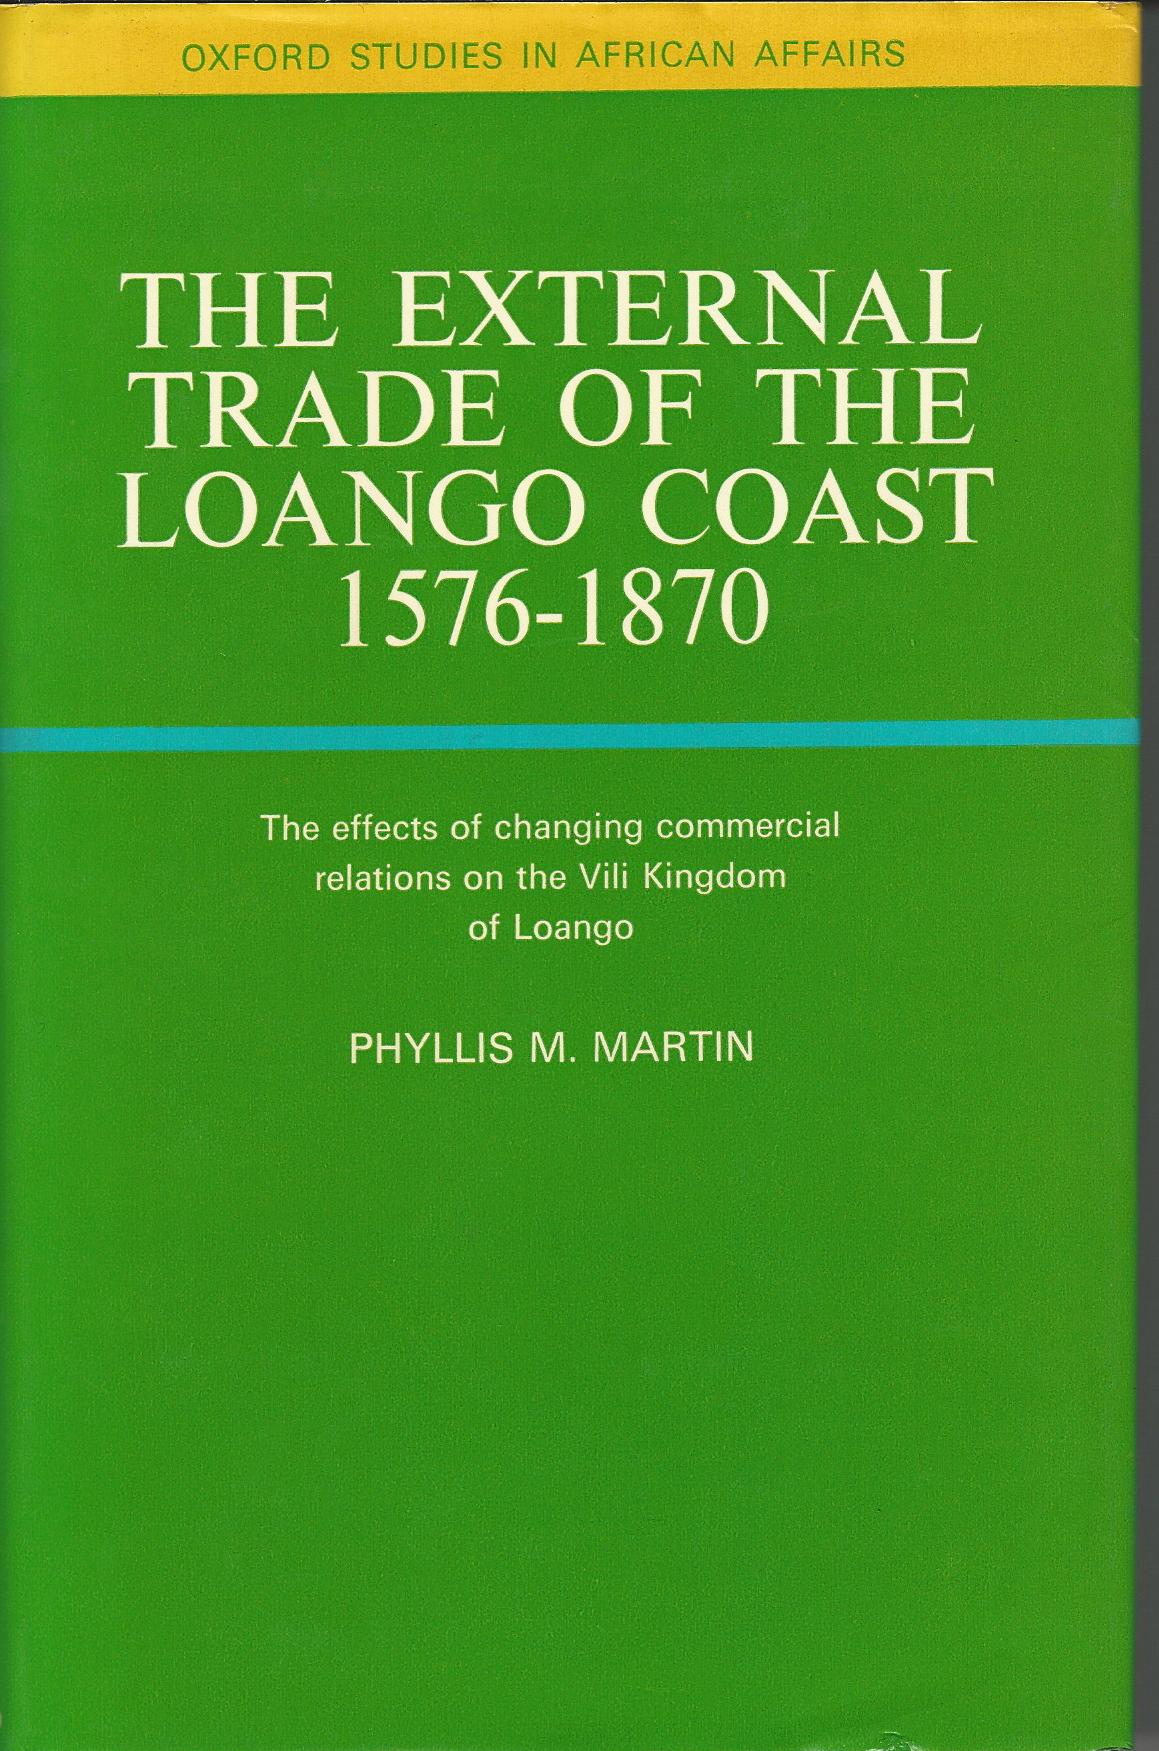 Image for External Trade of the Loango Coast, 1576-1870 (Study in African Affairs)